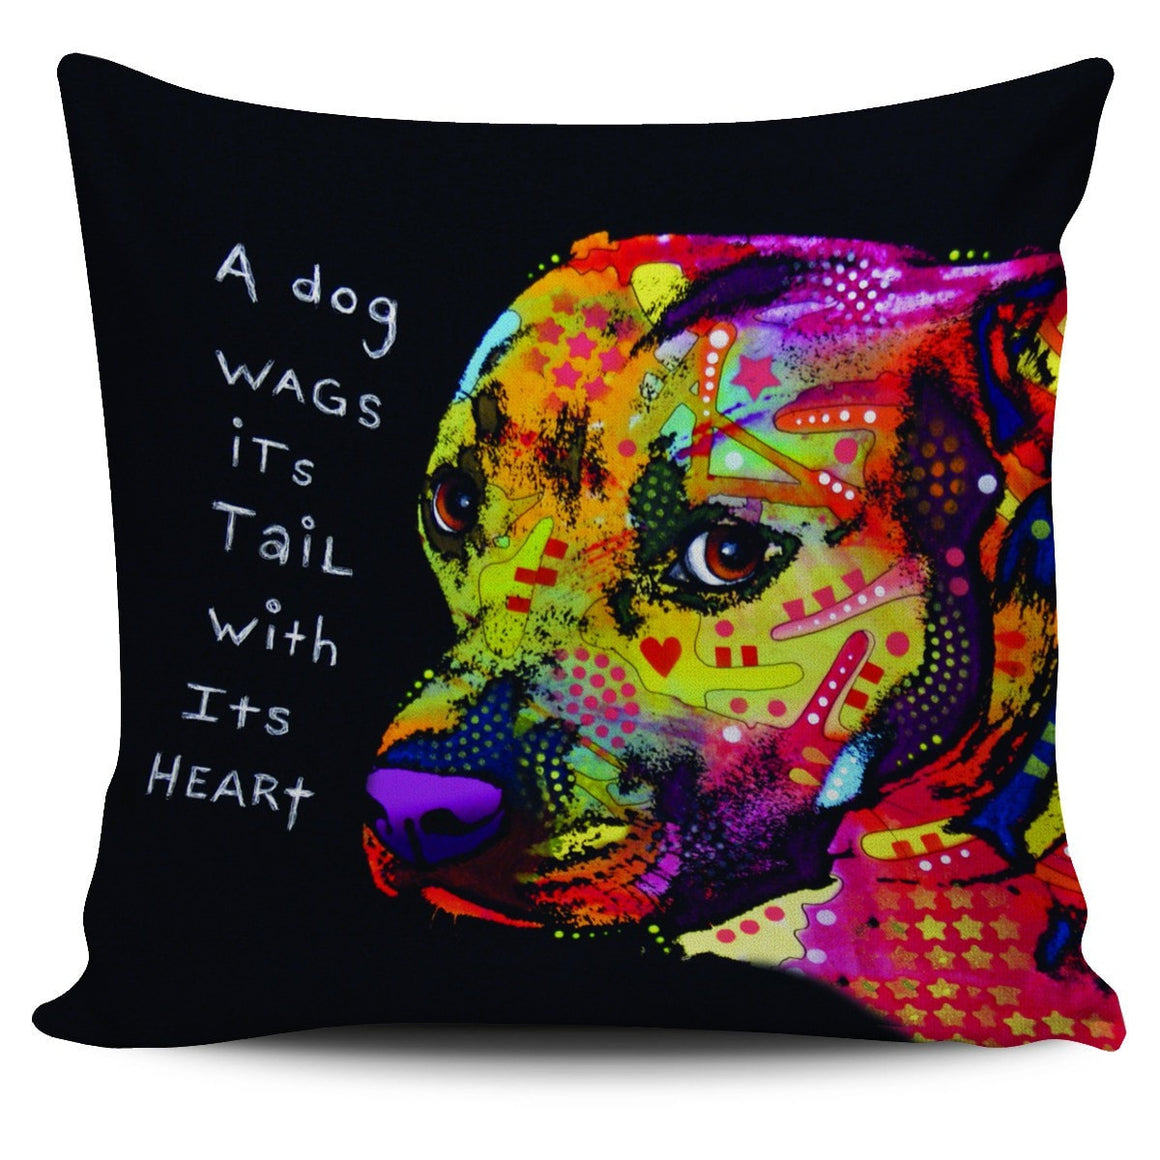 Pit Bull Pillow Covers Series II